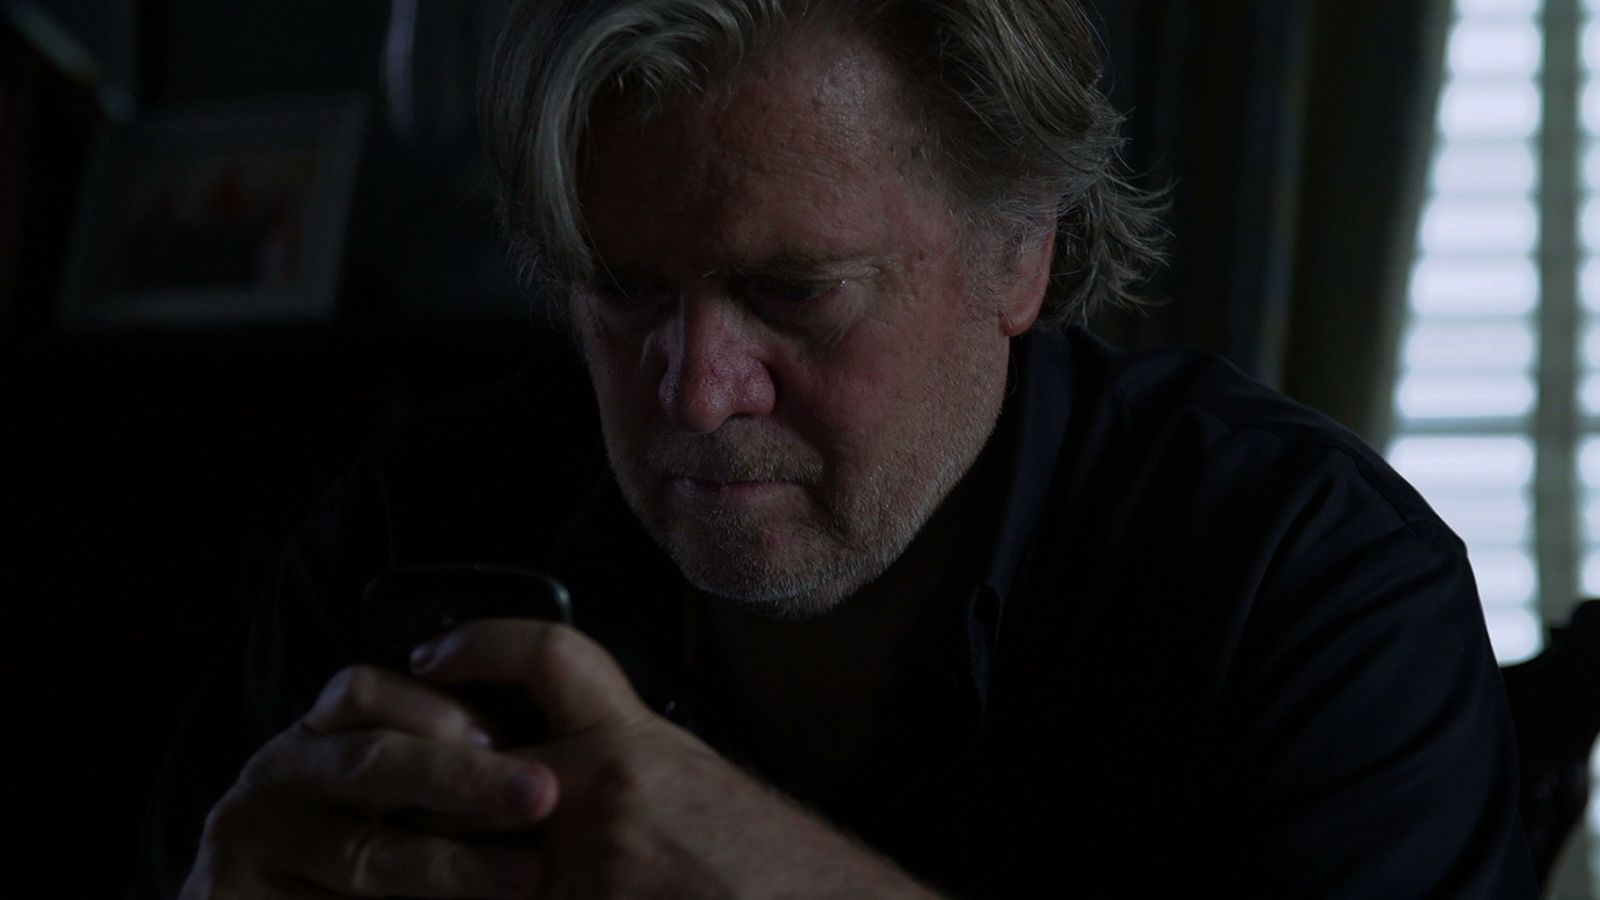 Steve Bannon in THE BRINK, a Magnolia Pictures release. Photo courtesy of Magnolia Pictures